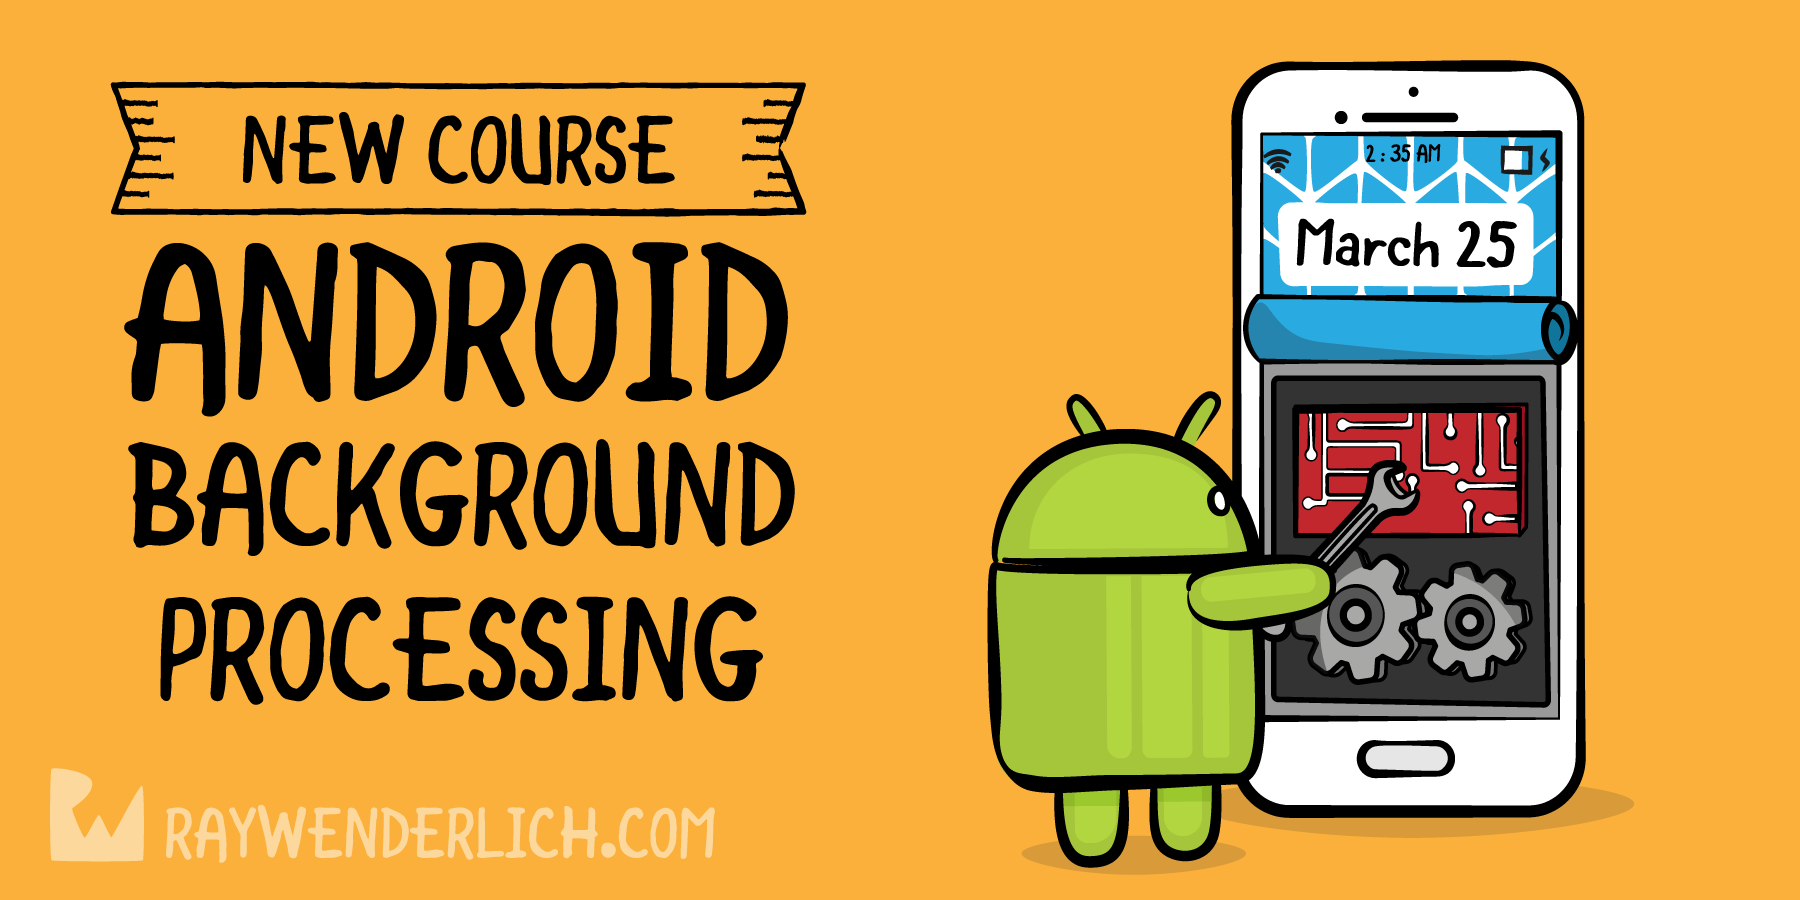 New Course: Android Background Processing | raywenderlich com